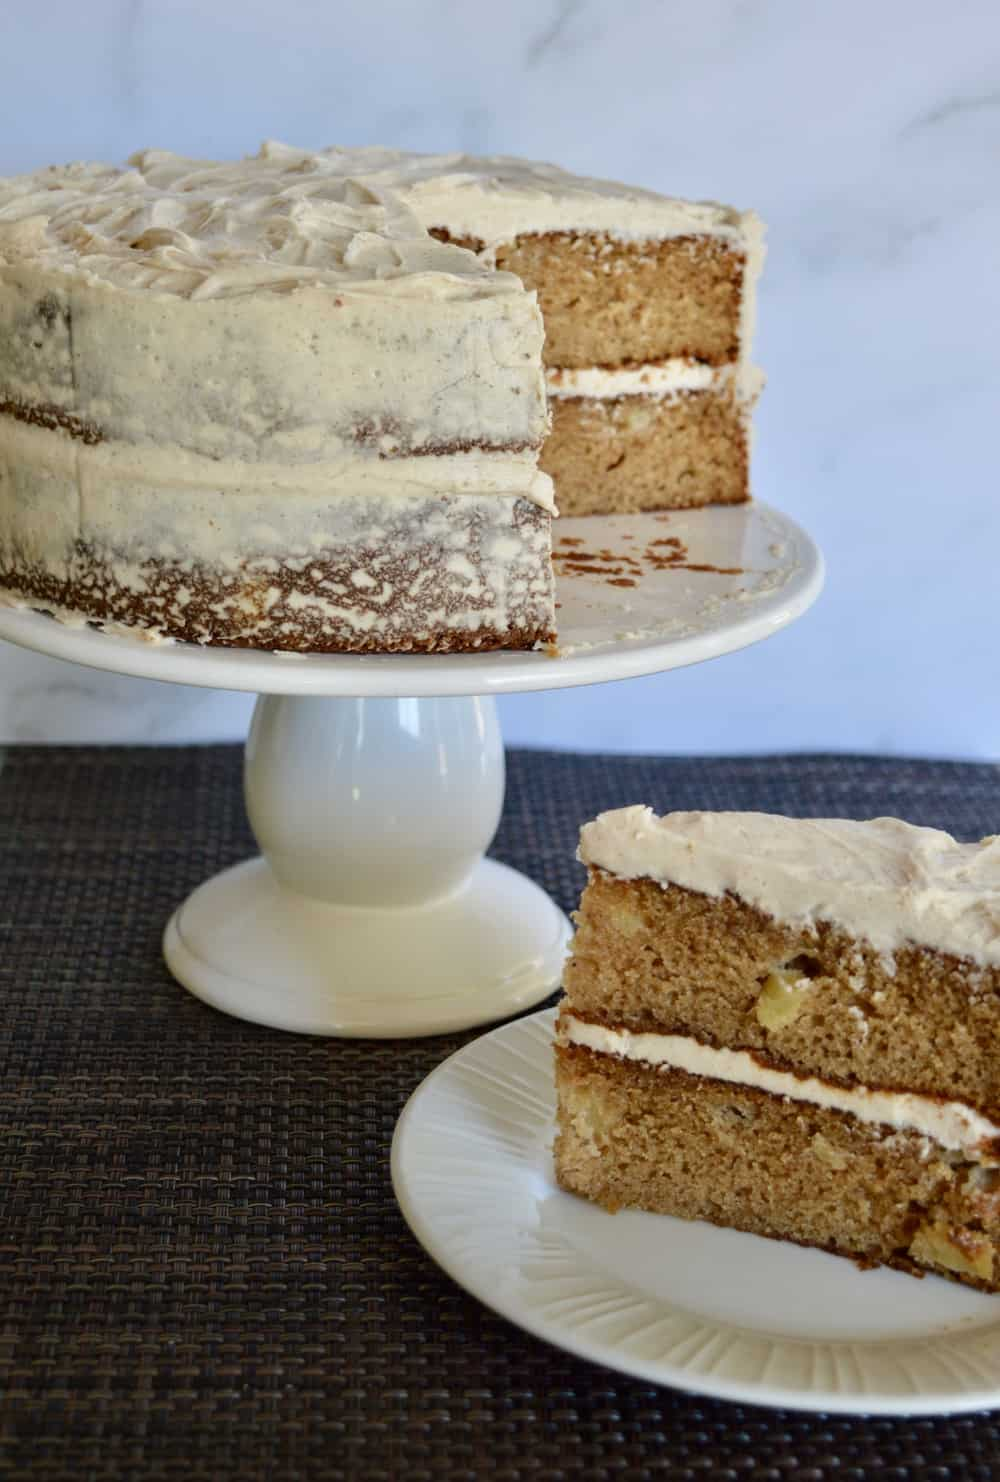 Apple Spice Cake with Cinnamon Buttercream Frosting.